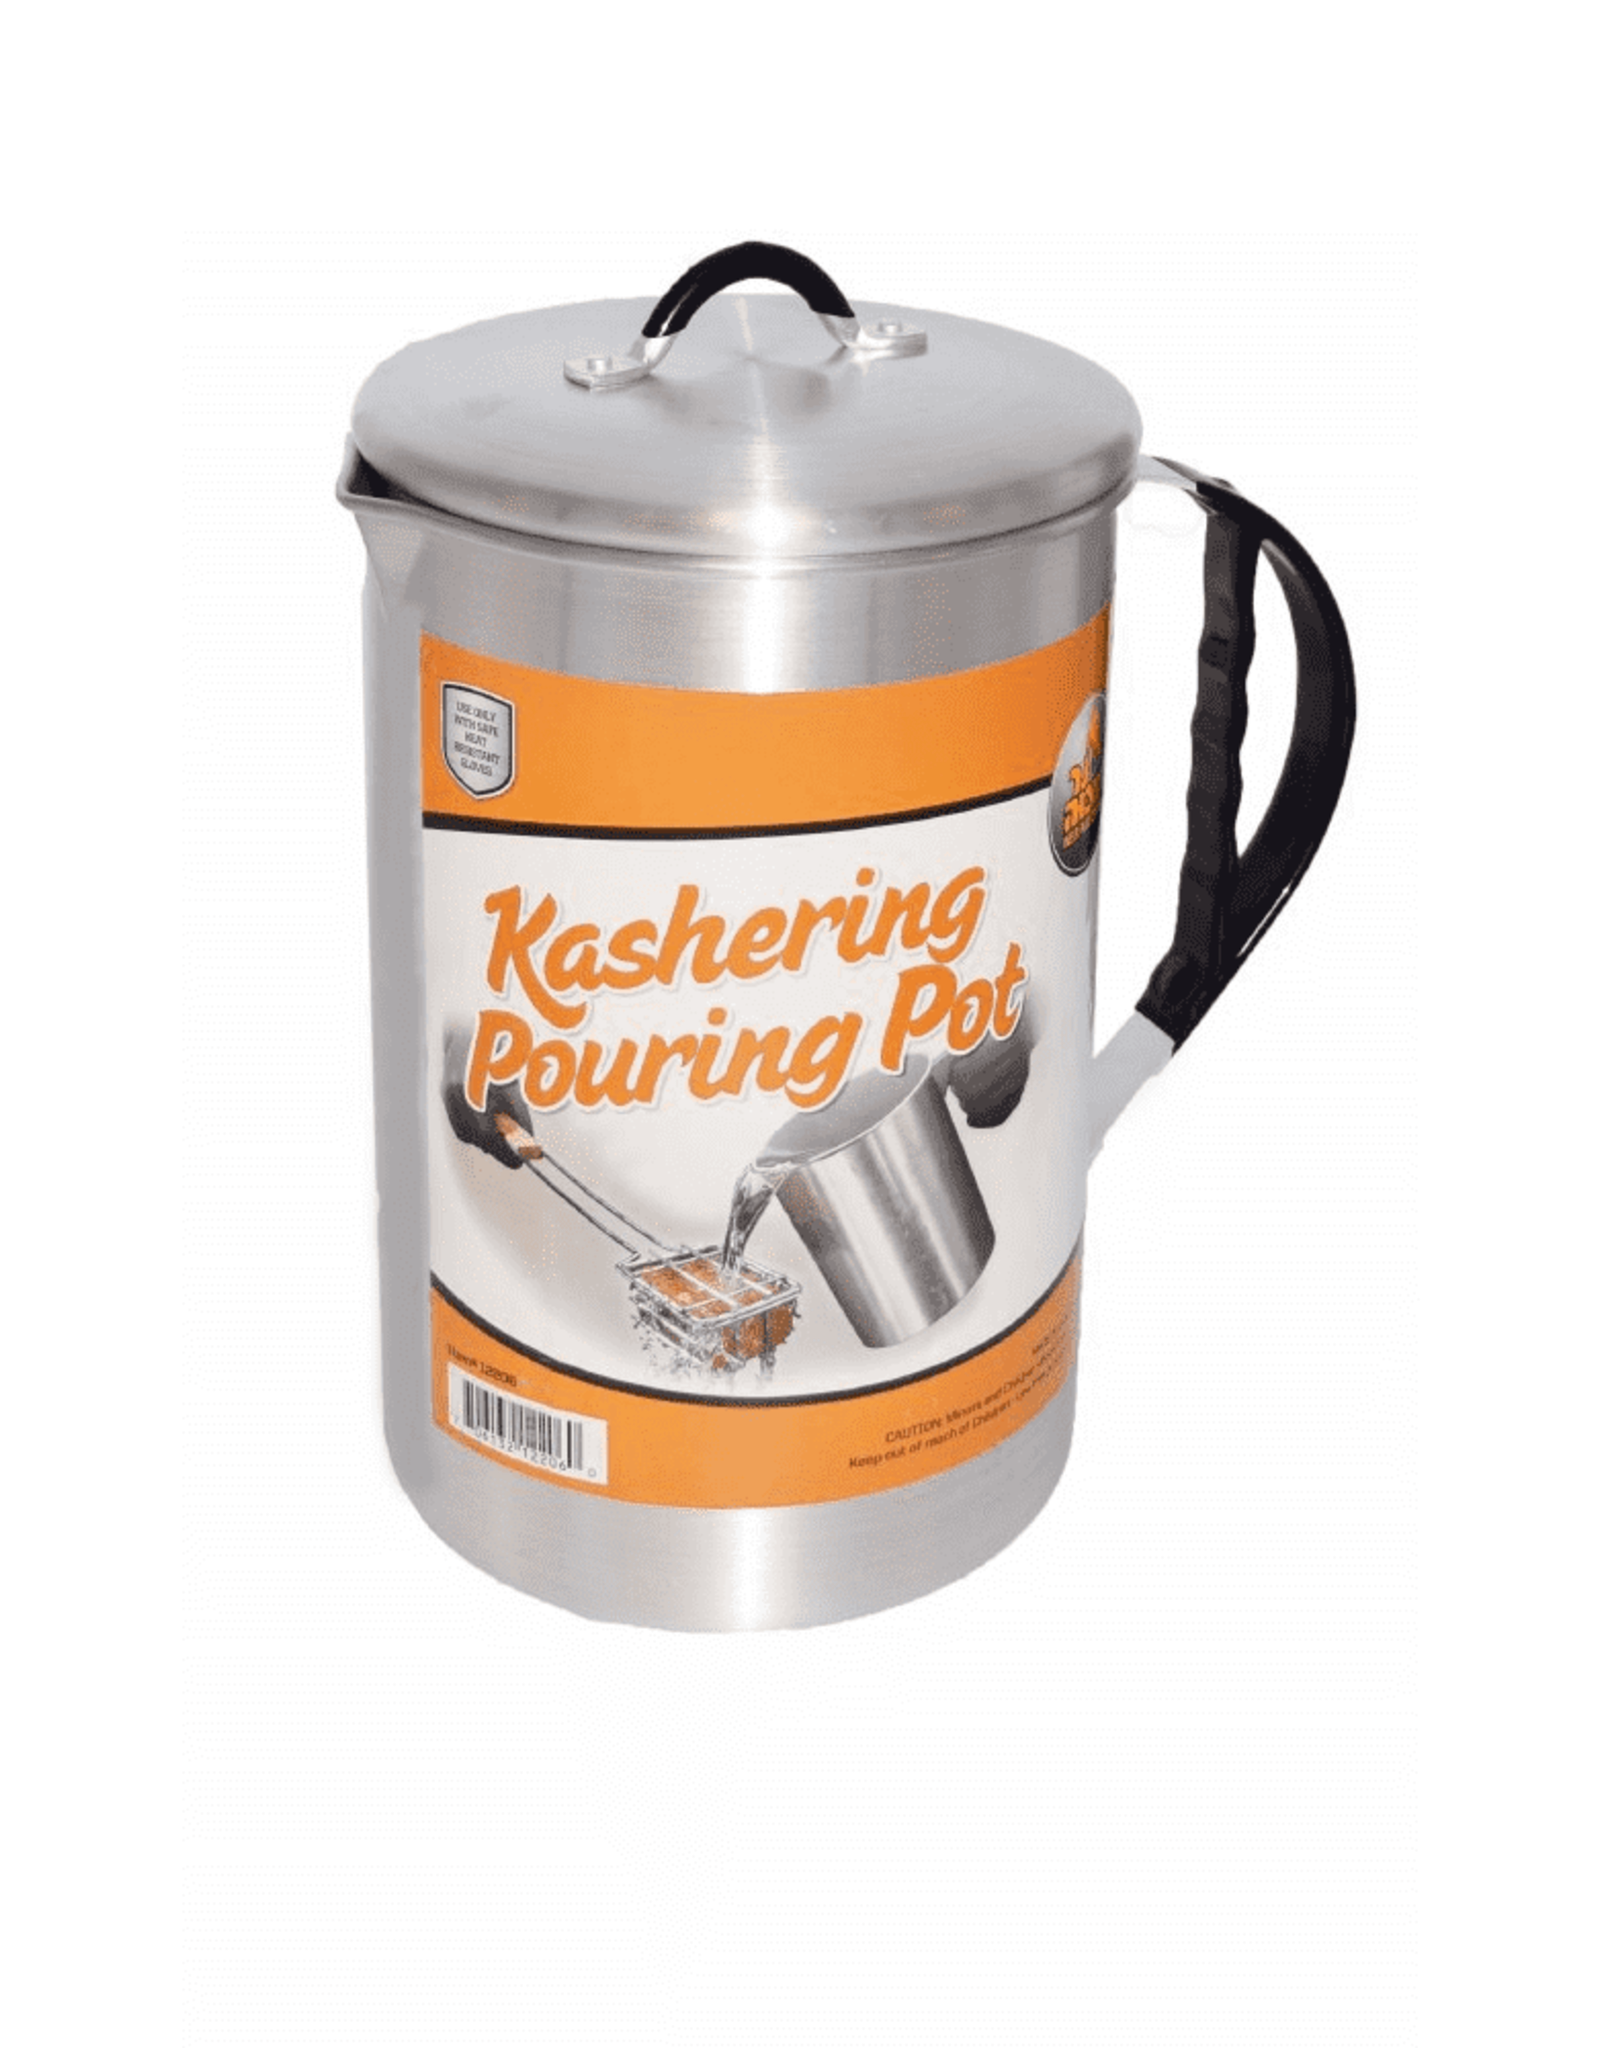 6 x Kashering Pouring pot Tall